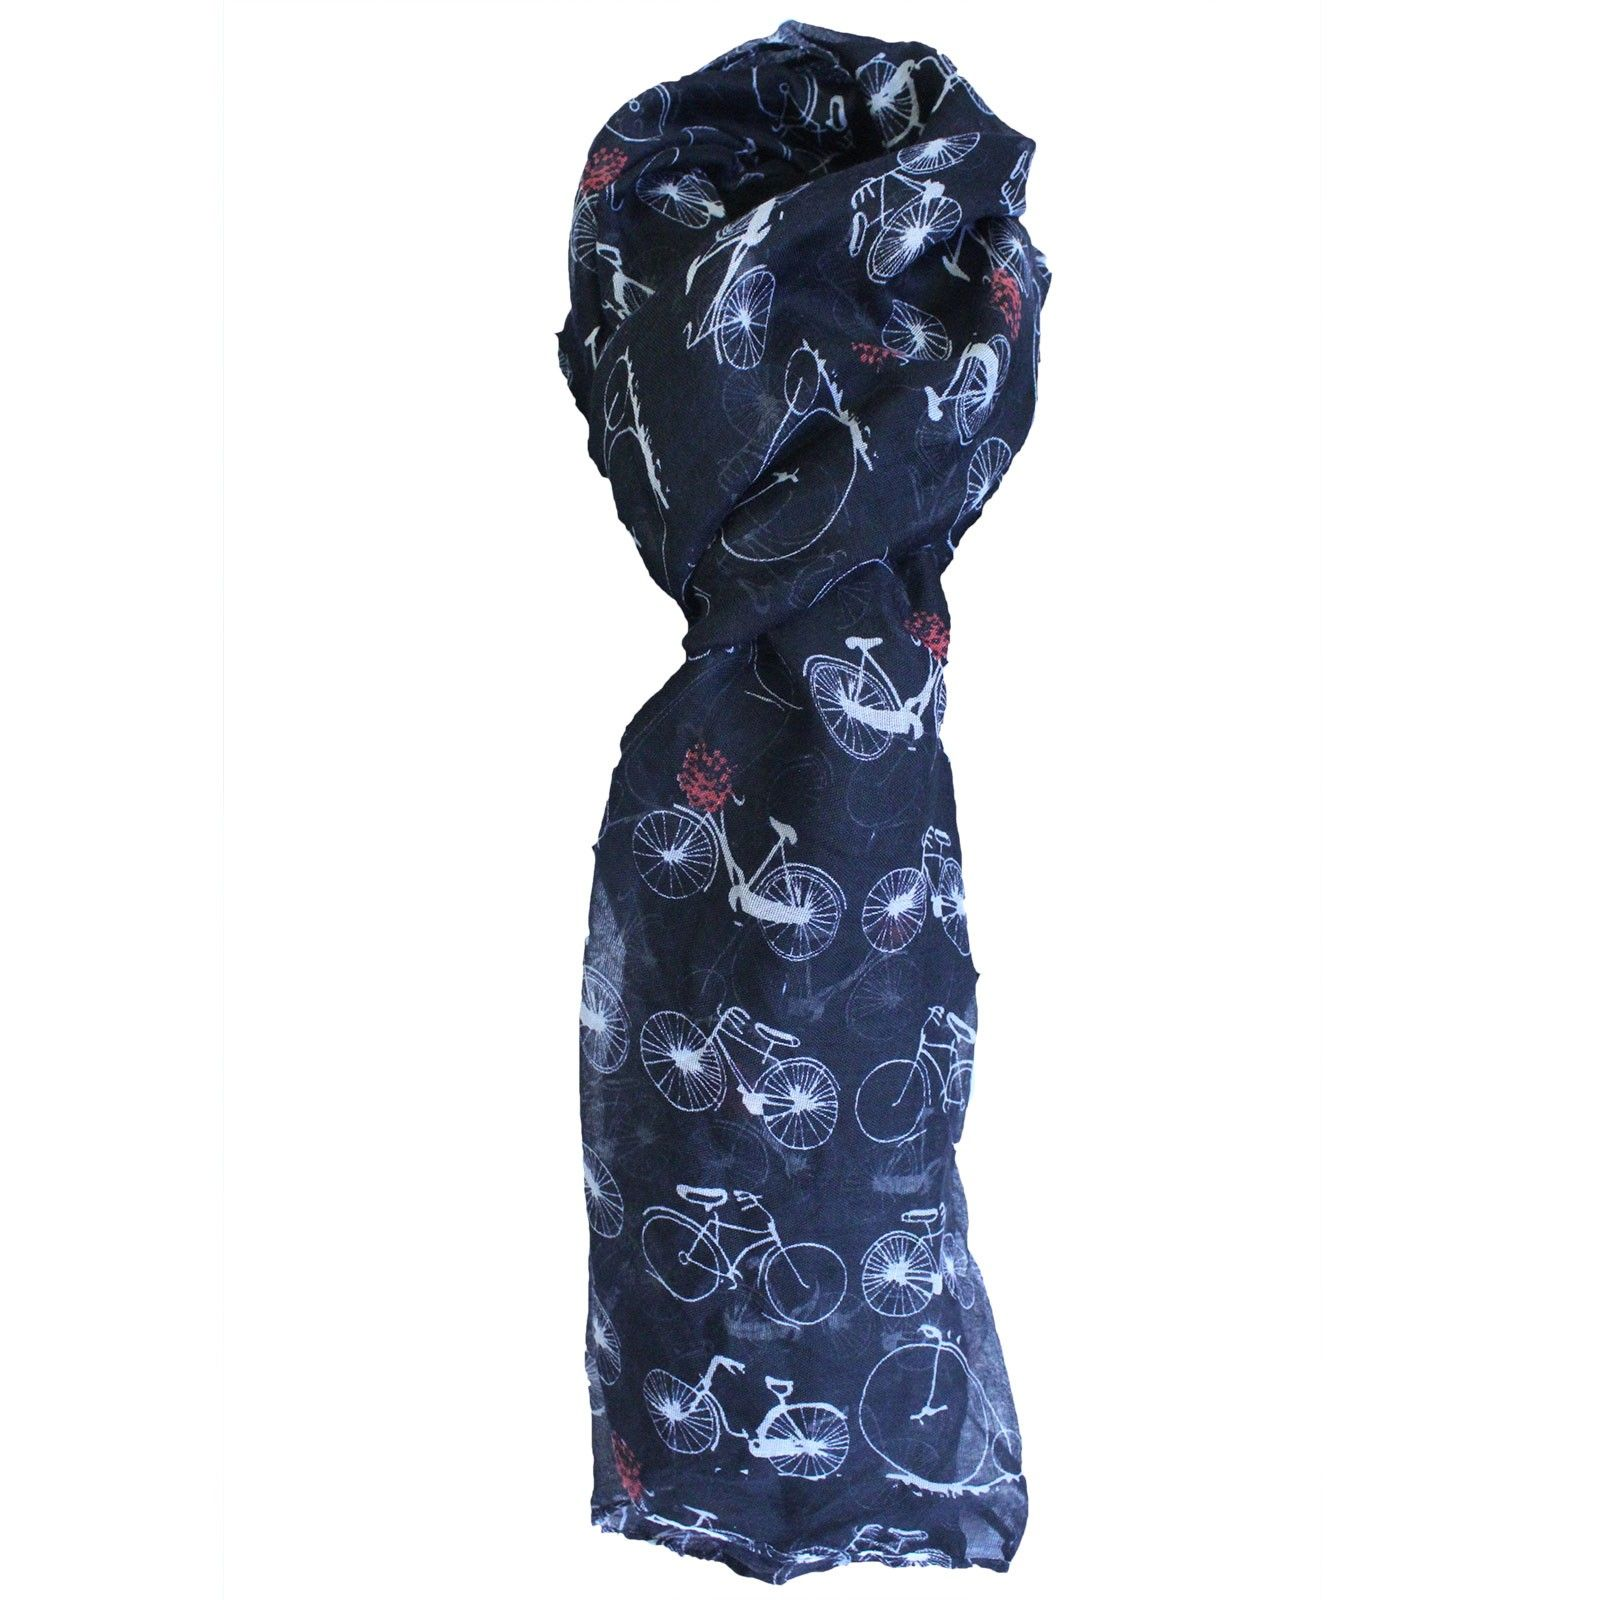 Countrylife Scarves - Bicycles | Hip Angels #Scarves_Wholesale #Wholesale_Scarves #Elemental_Scarves #Bicycle_Scarves #Quality_Scarves